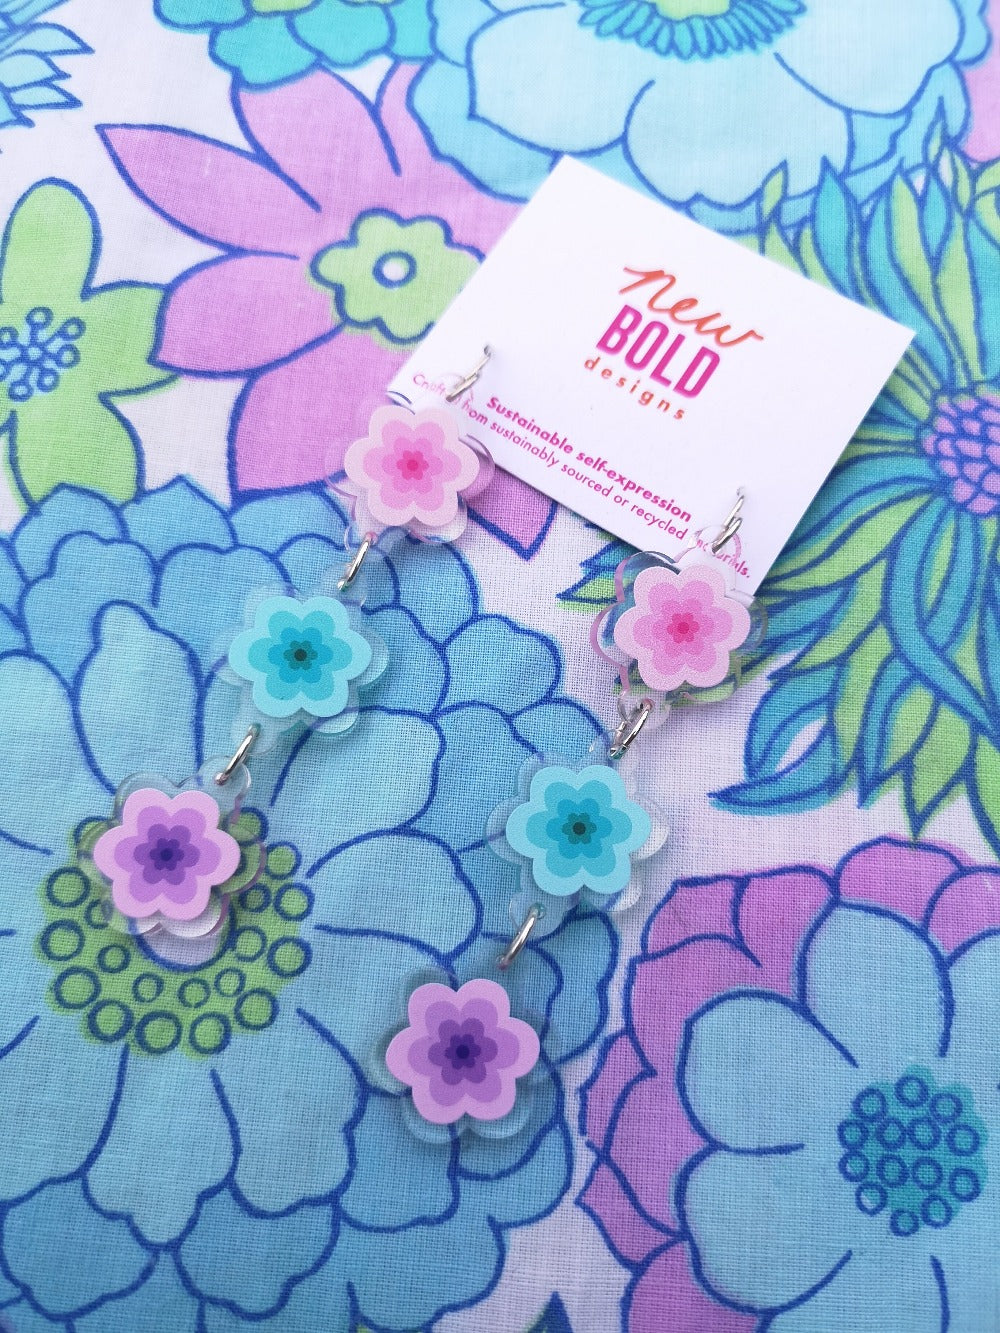 Riley dangles (3 flowers) - recycled acrylic dangles